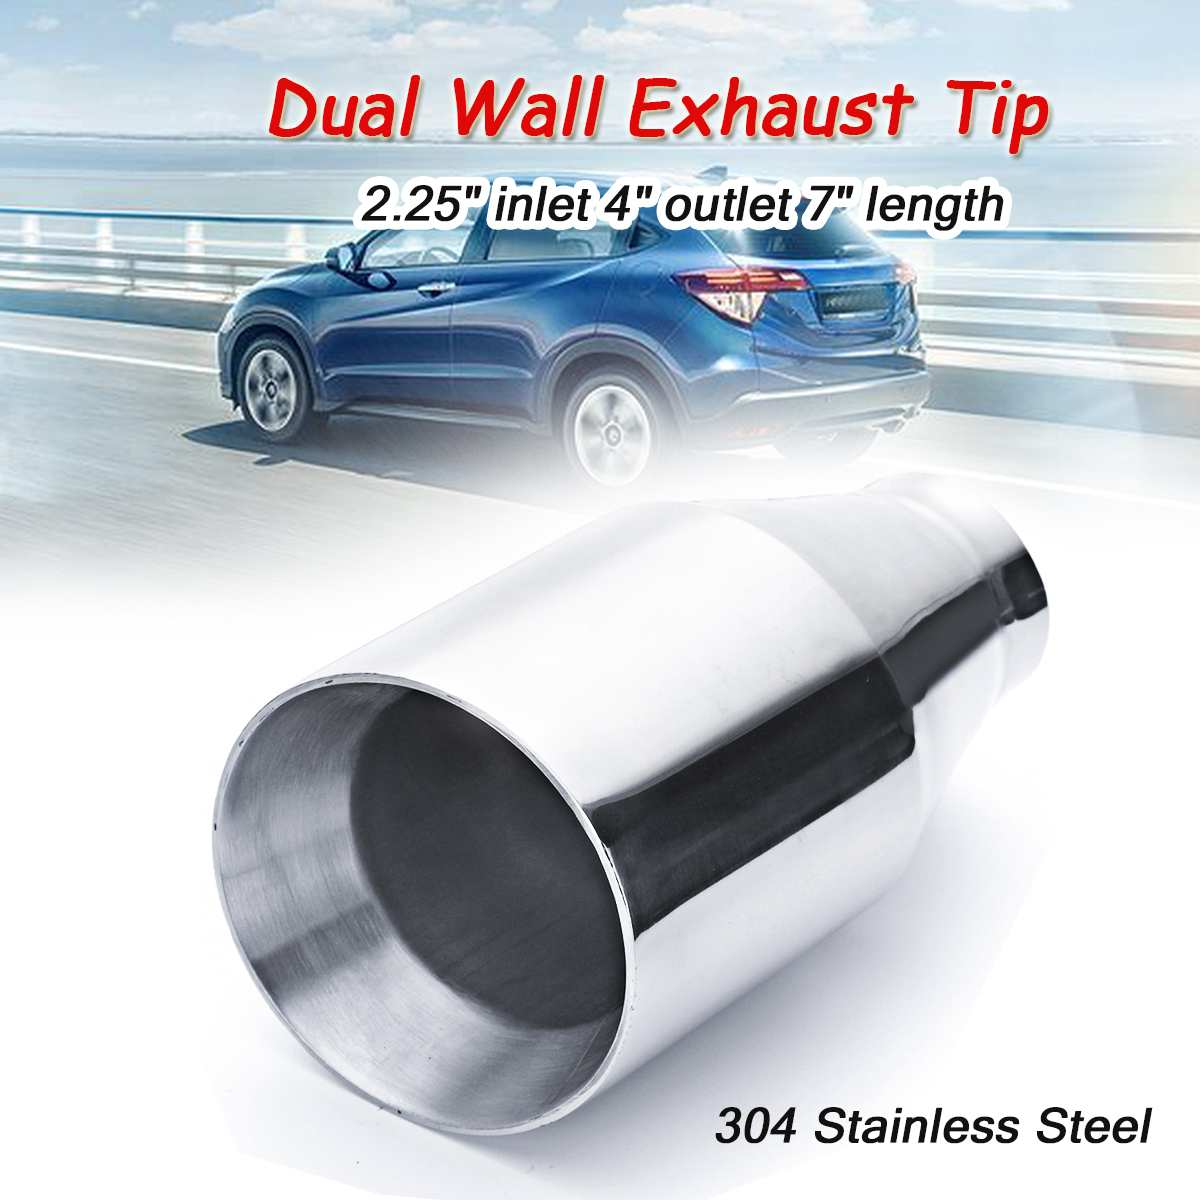 Universal 58mm-101mm Car Exhaust Muffler Pipe Dual Wall Exhaust Tip Tail Pipe Outlet Nozzle Stainless Steel